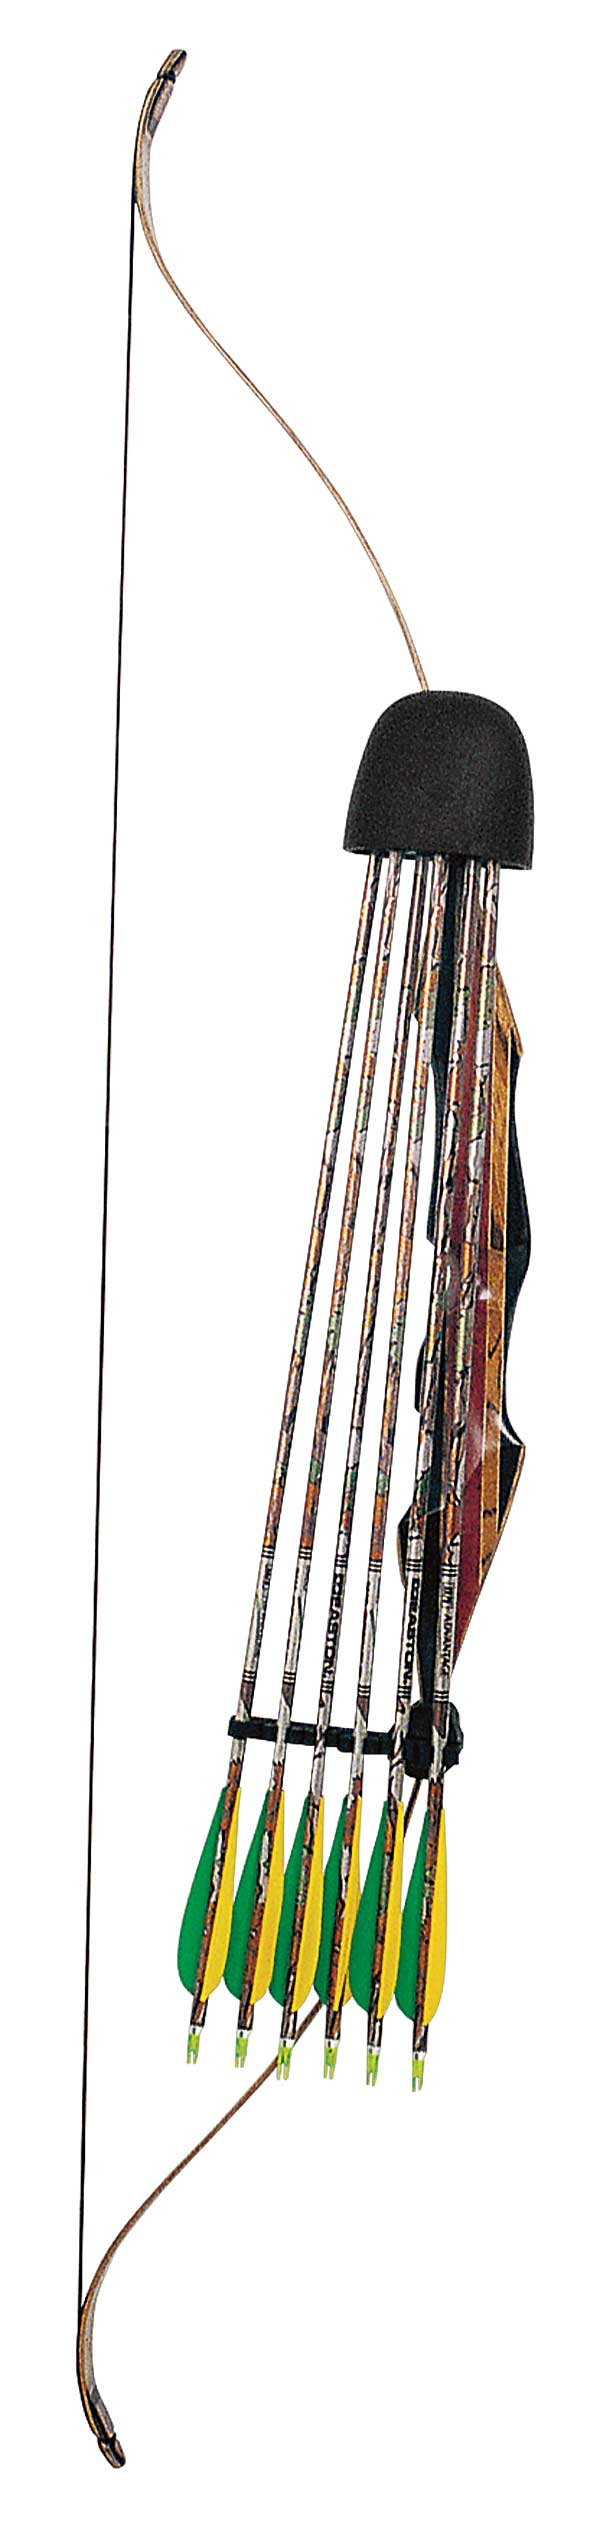 Selway rubber hood 6 arrow recurve bow quiver Photograph